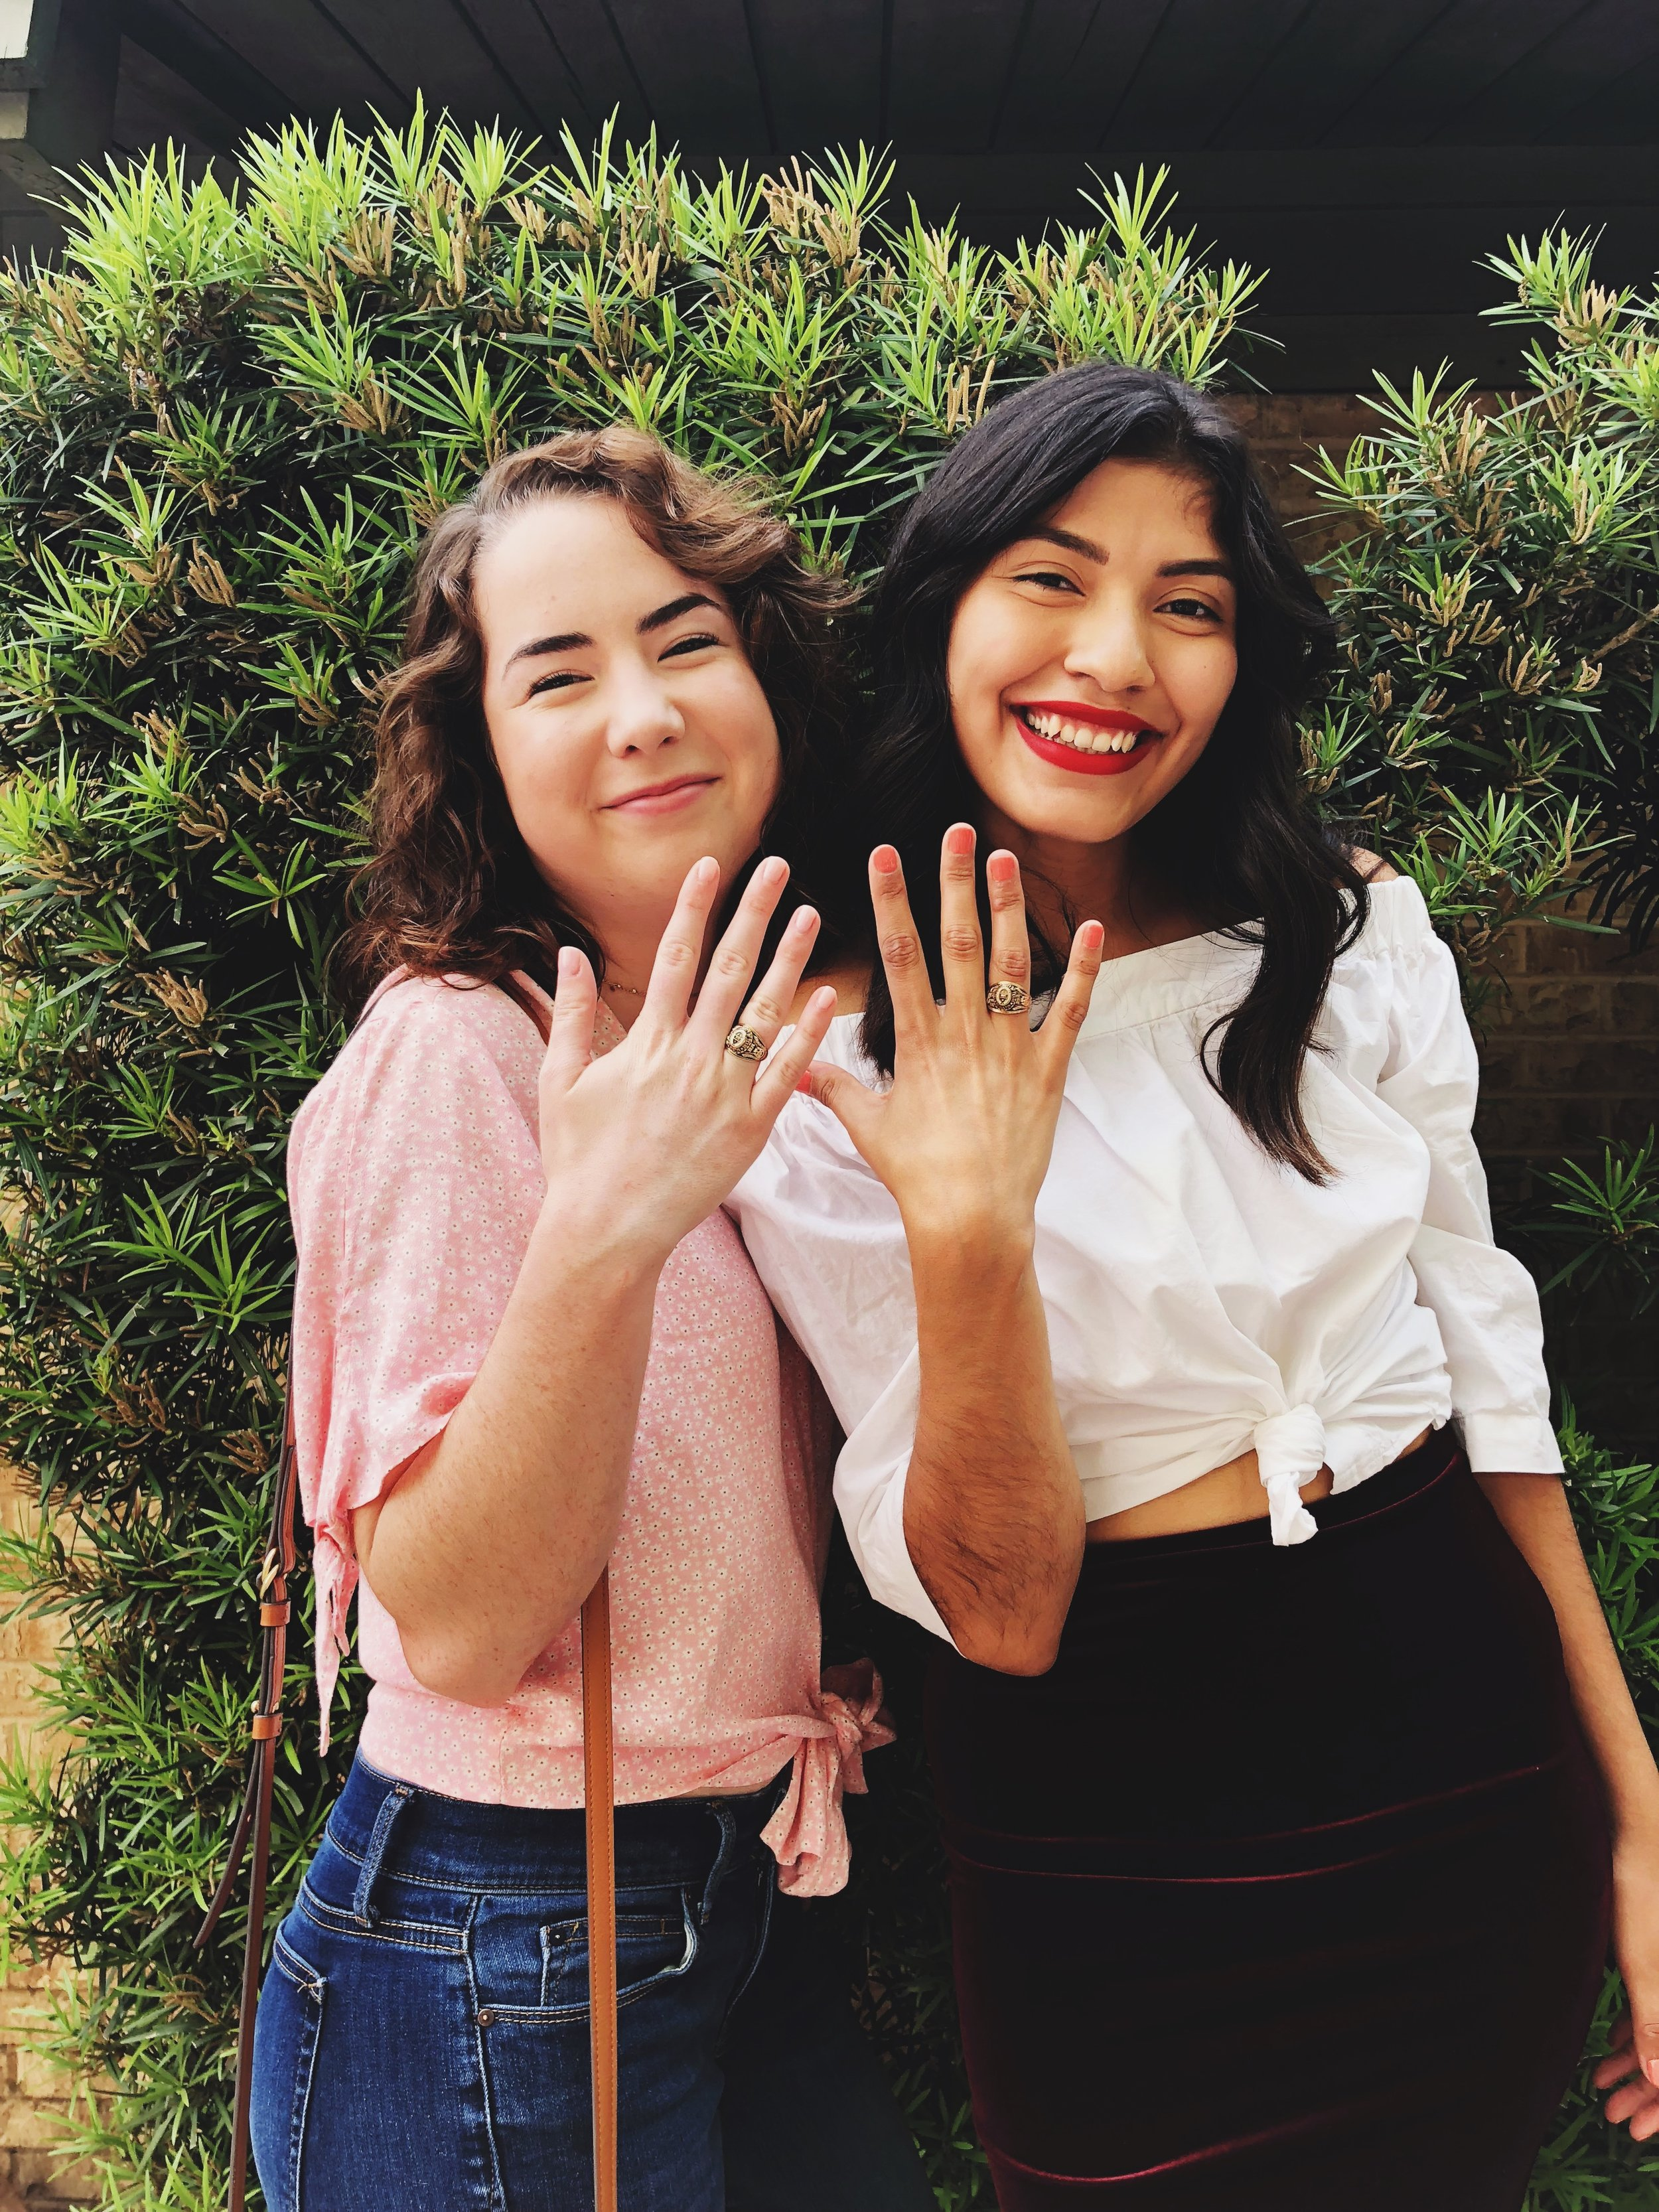 Mackenzie (left) and Jessica (right) at Jessica's ring ceremony Spring 2018.